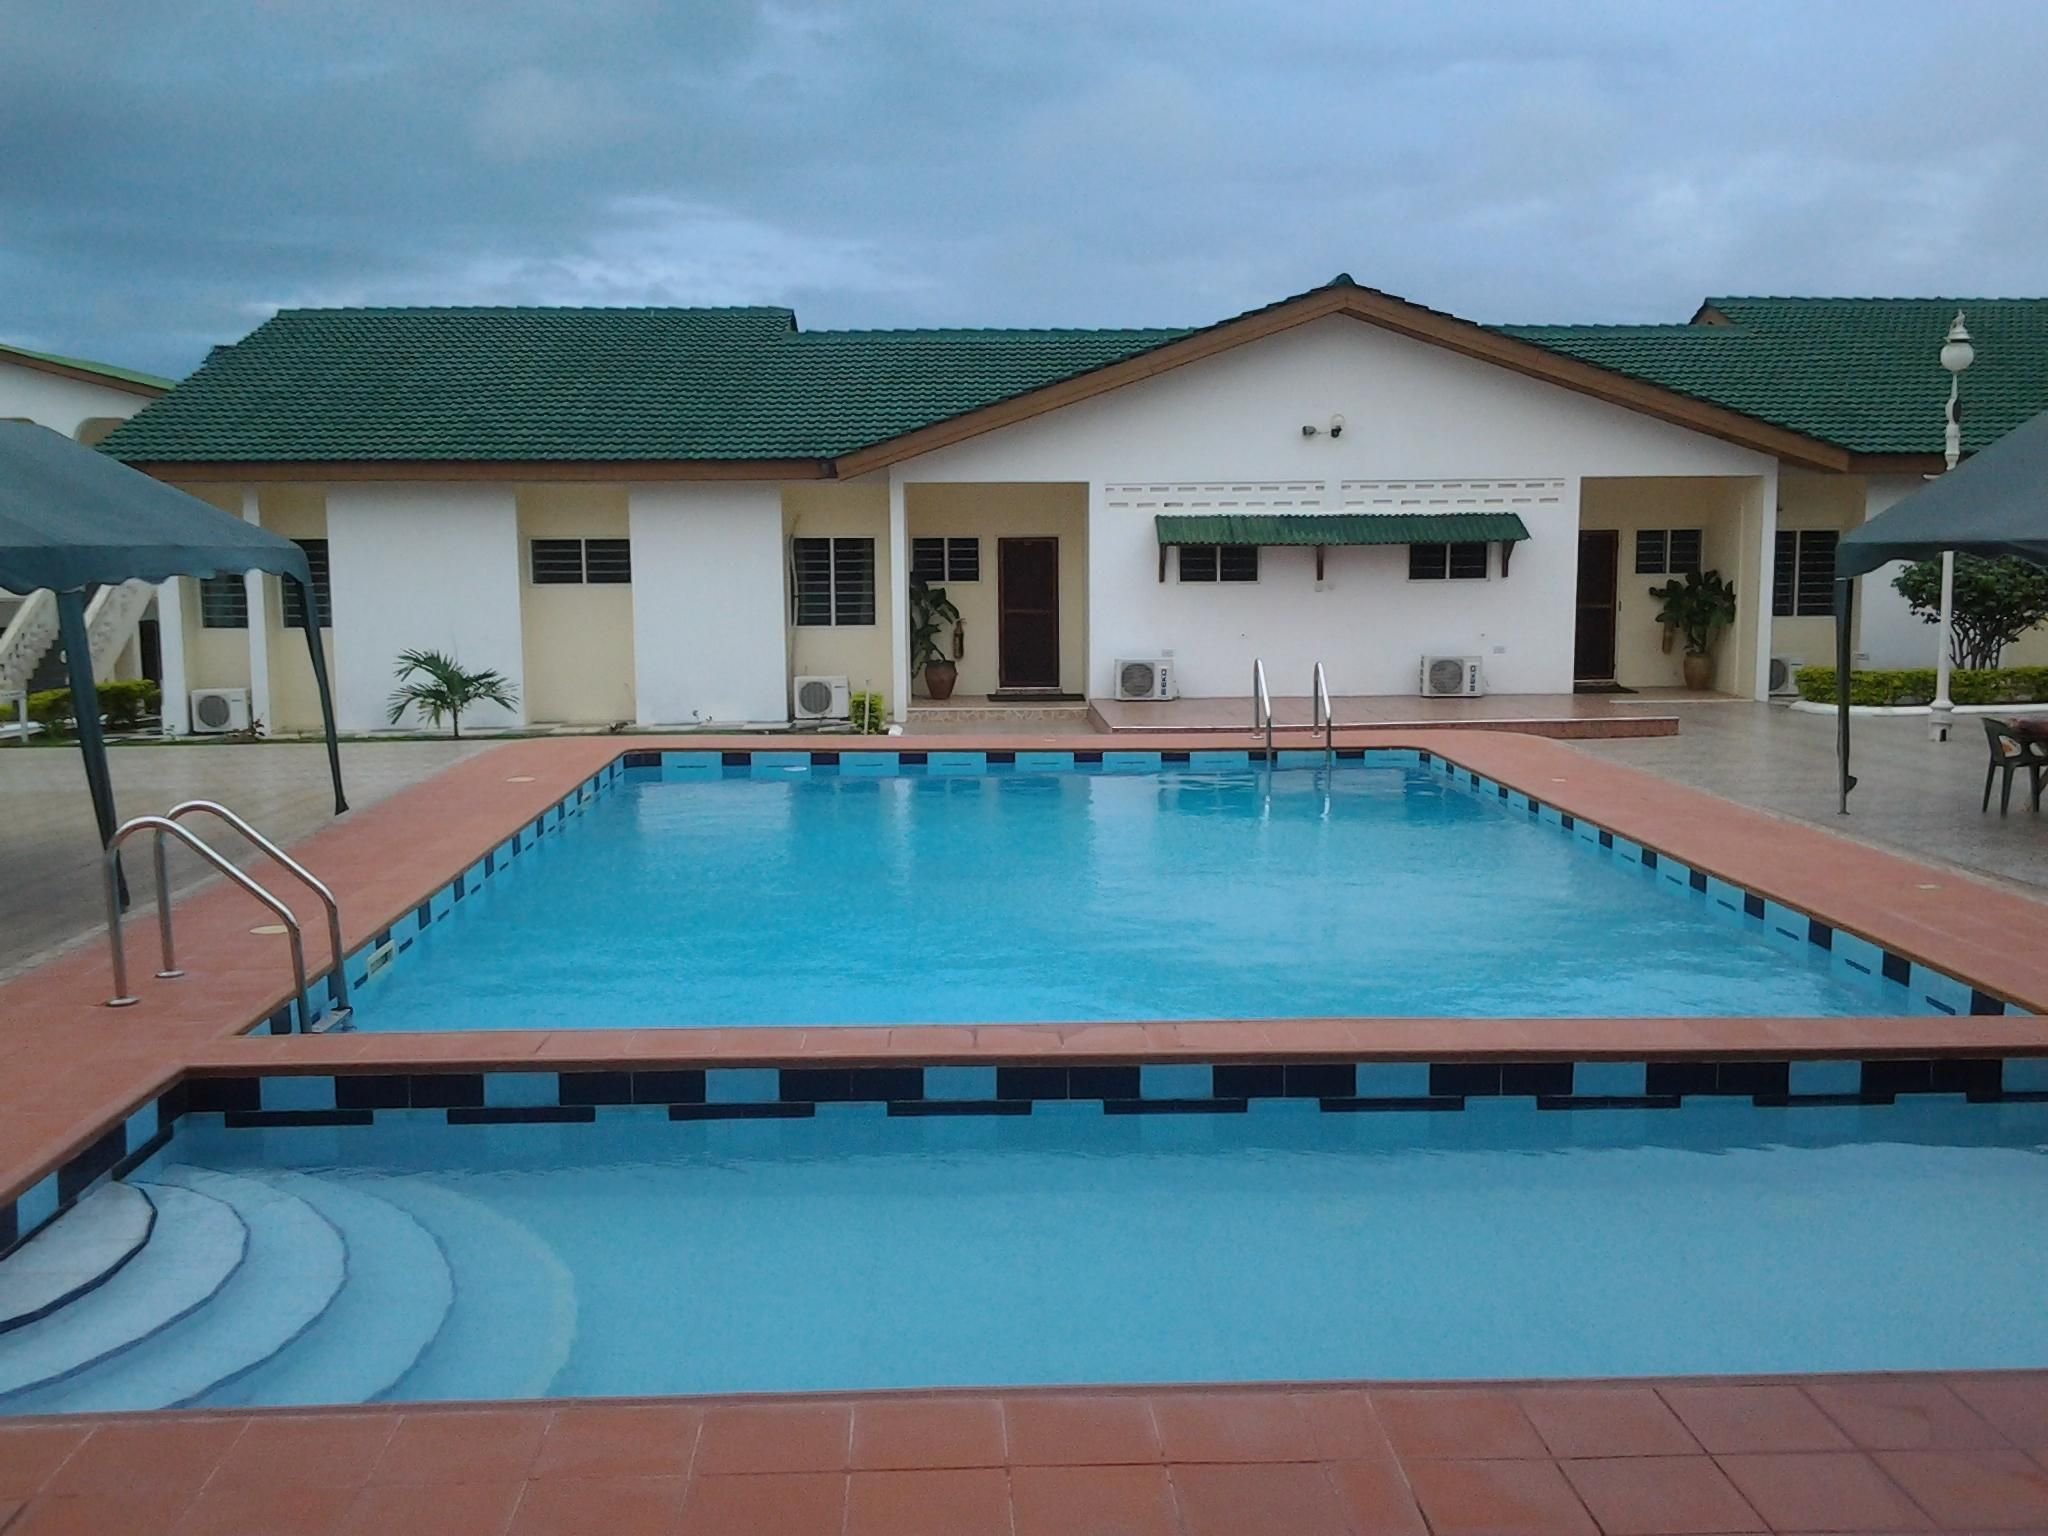 Cape Coast Hotel Loreto Ghana Africa Is Conveniently Located In The Por Central